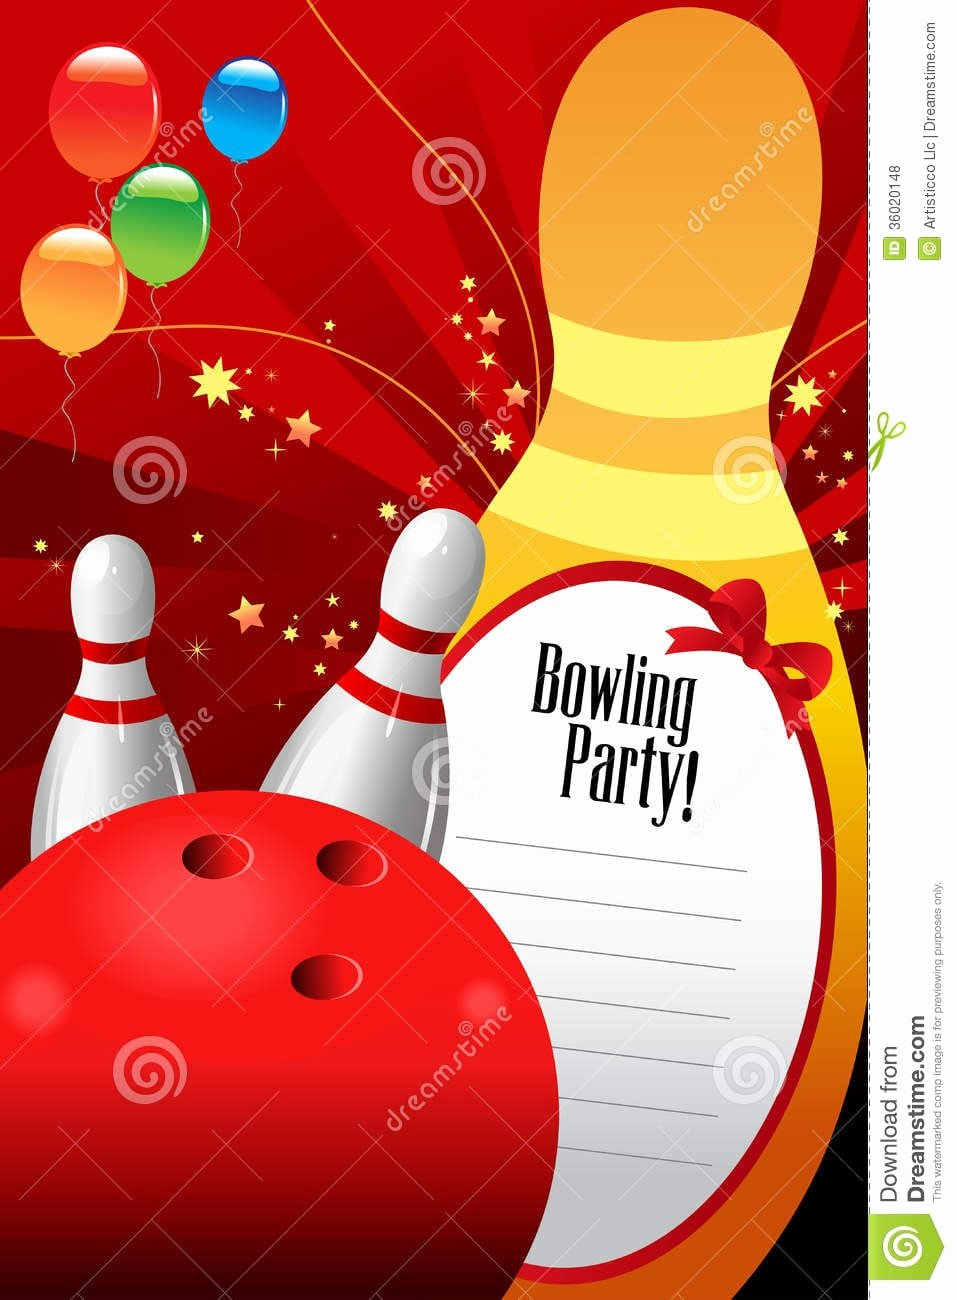 Bowling Party Invitation Templates Fresh Free Bowling Invitation Template